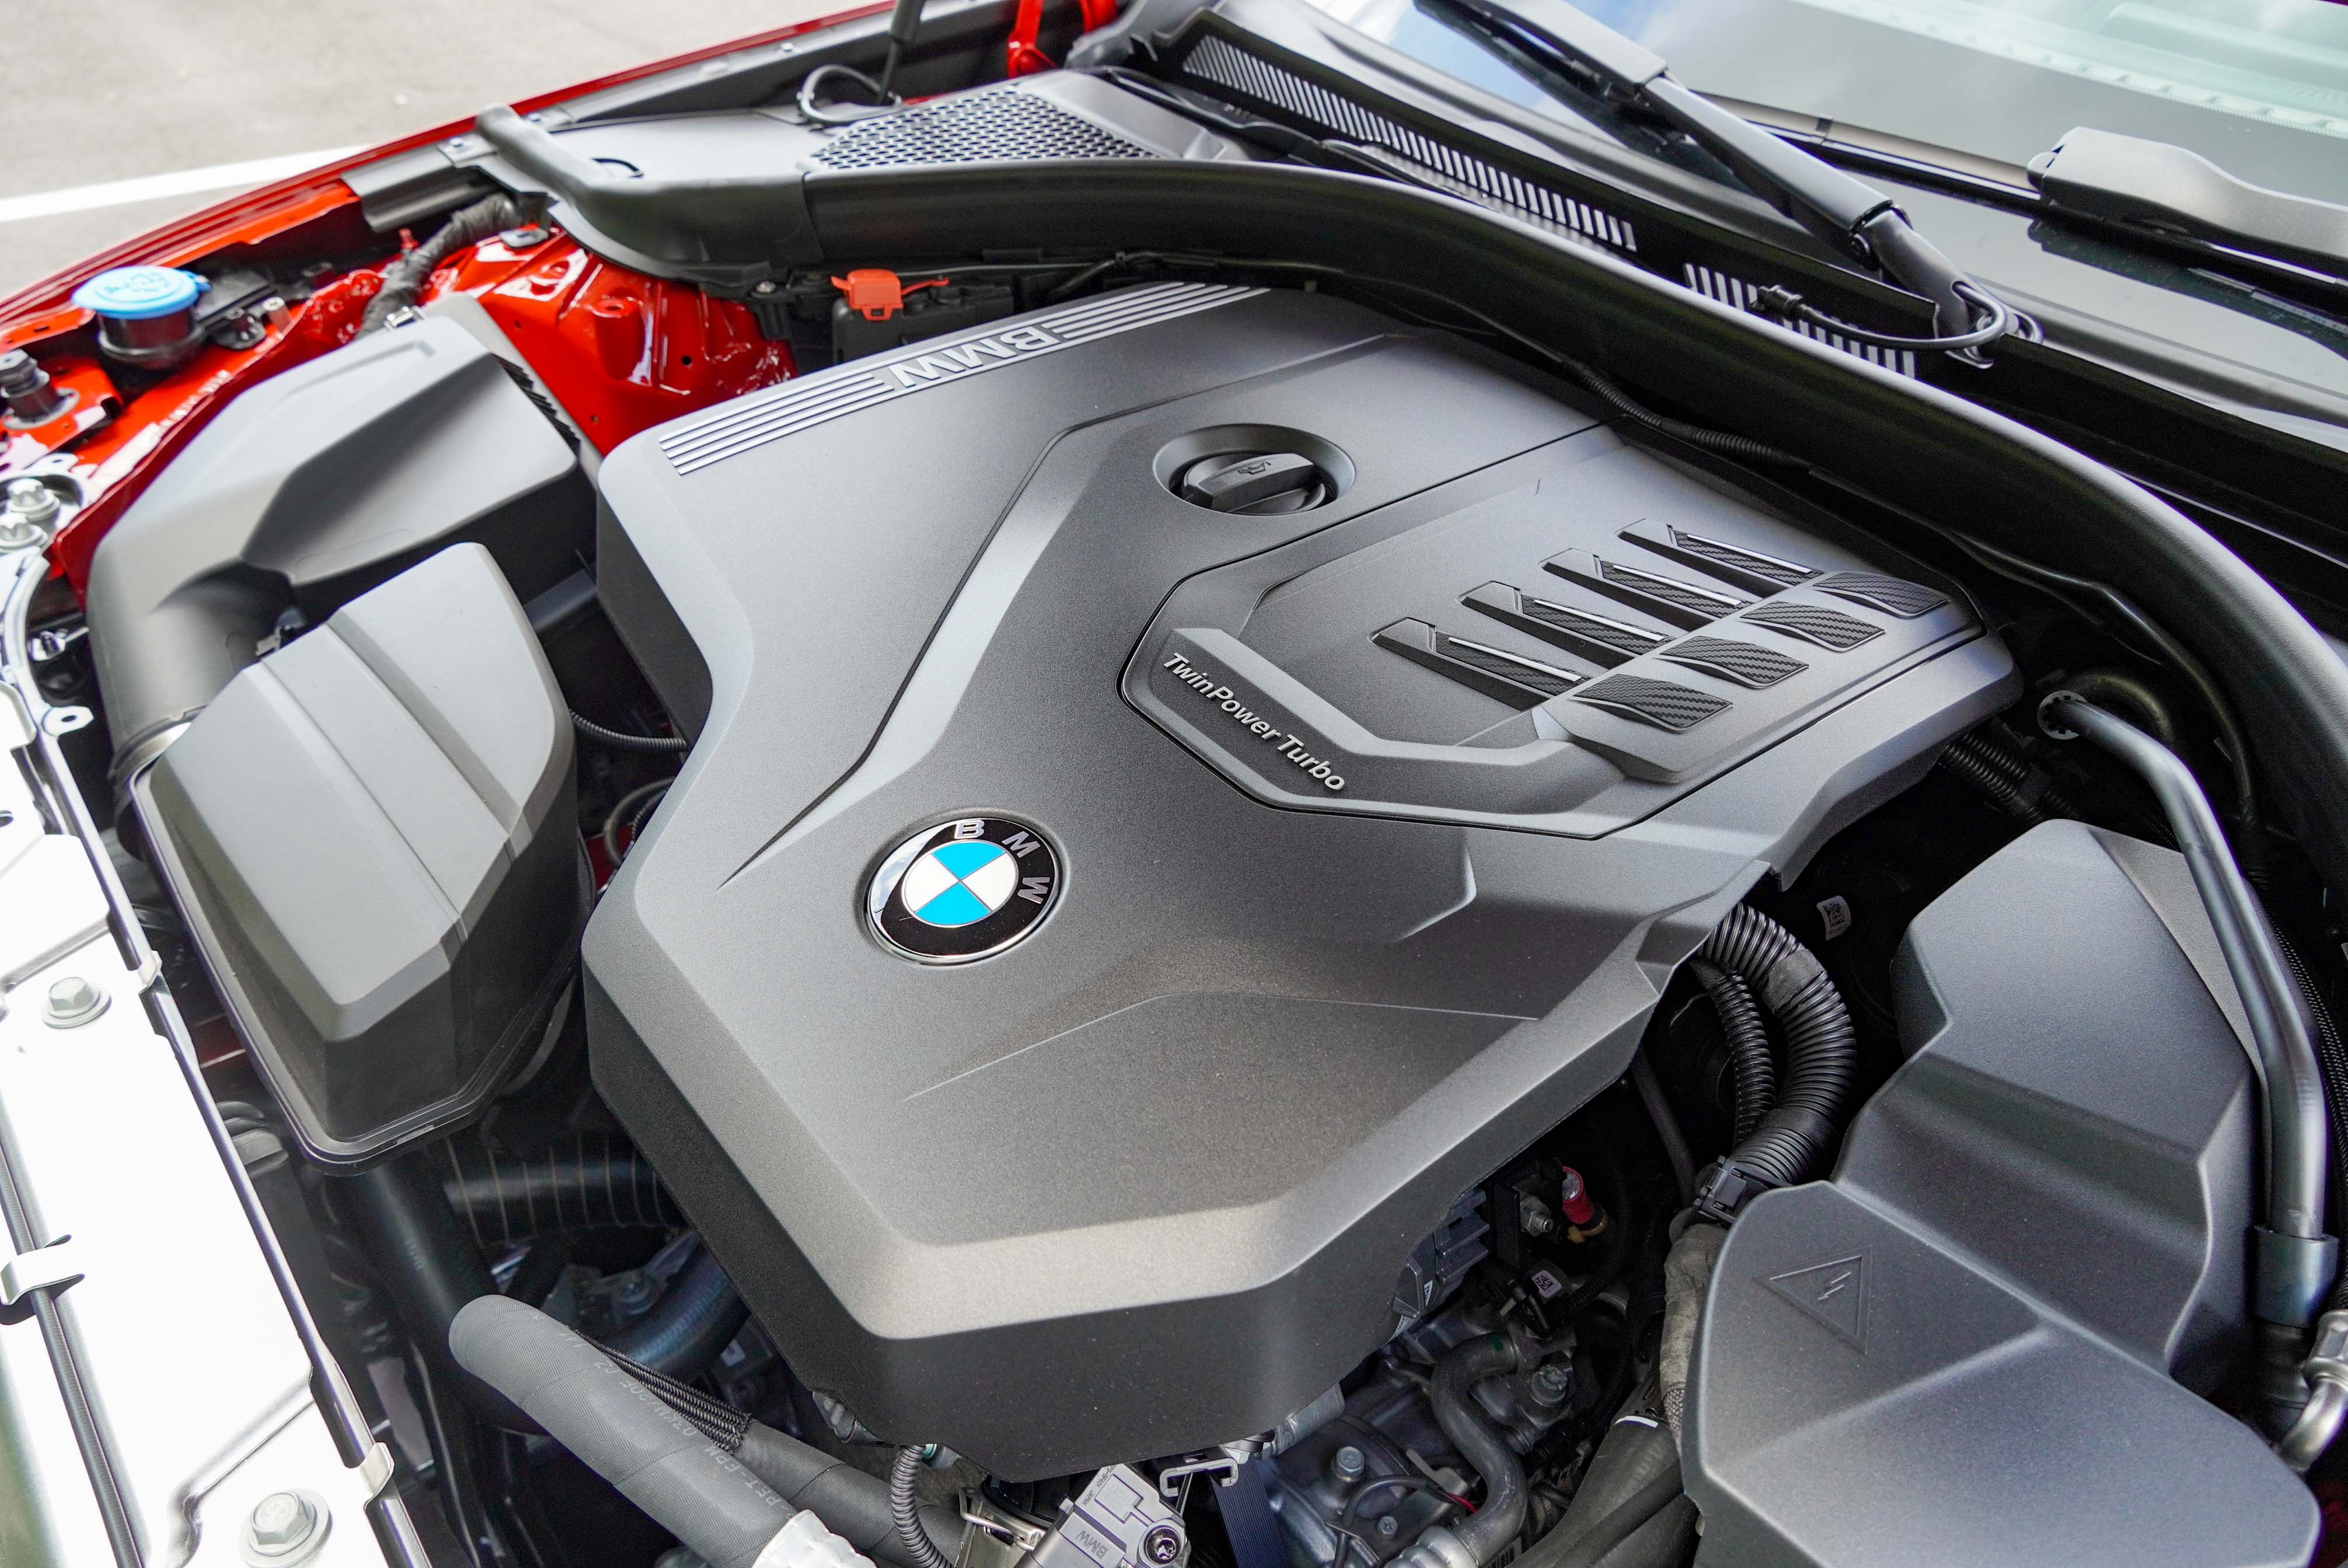 BMW 318i Luxury 搭載 TwinPower Turbo 渦輪增壓四缸引擎,動力為 156 hp/250 Nm。